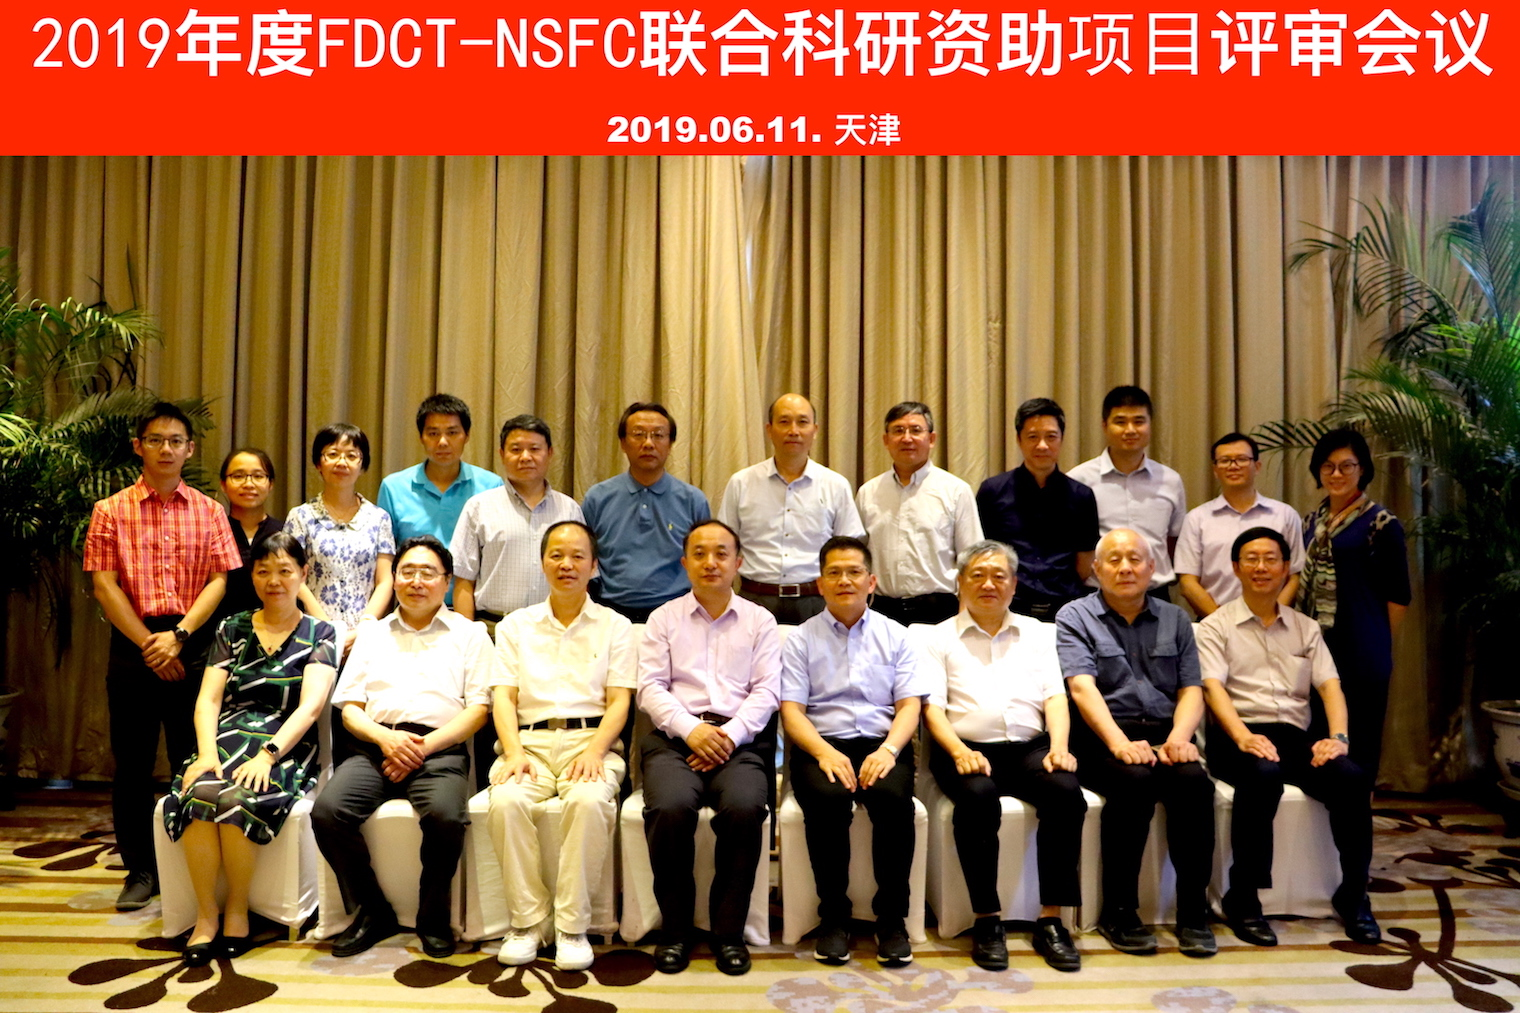 Joint Review Meeting of FDCT and NSFC Held in Tianjin